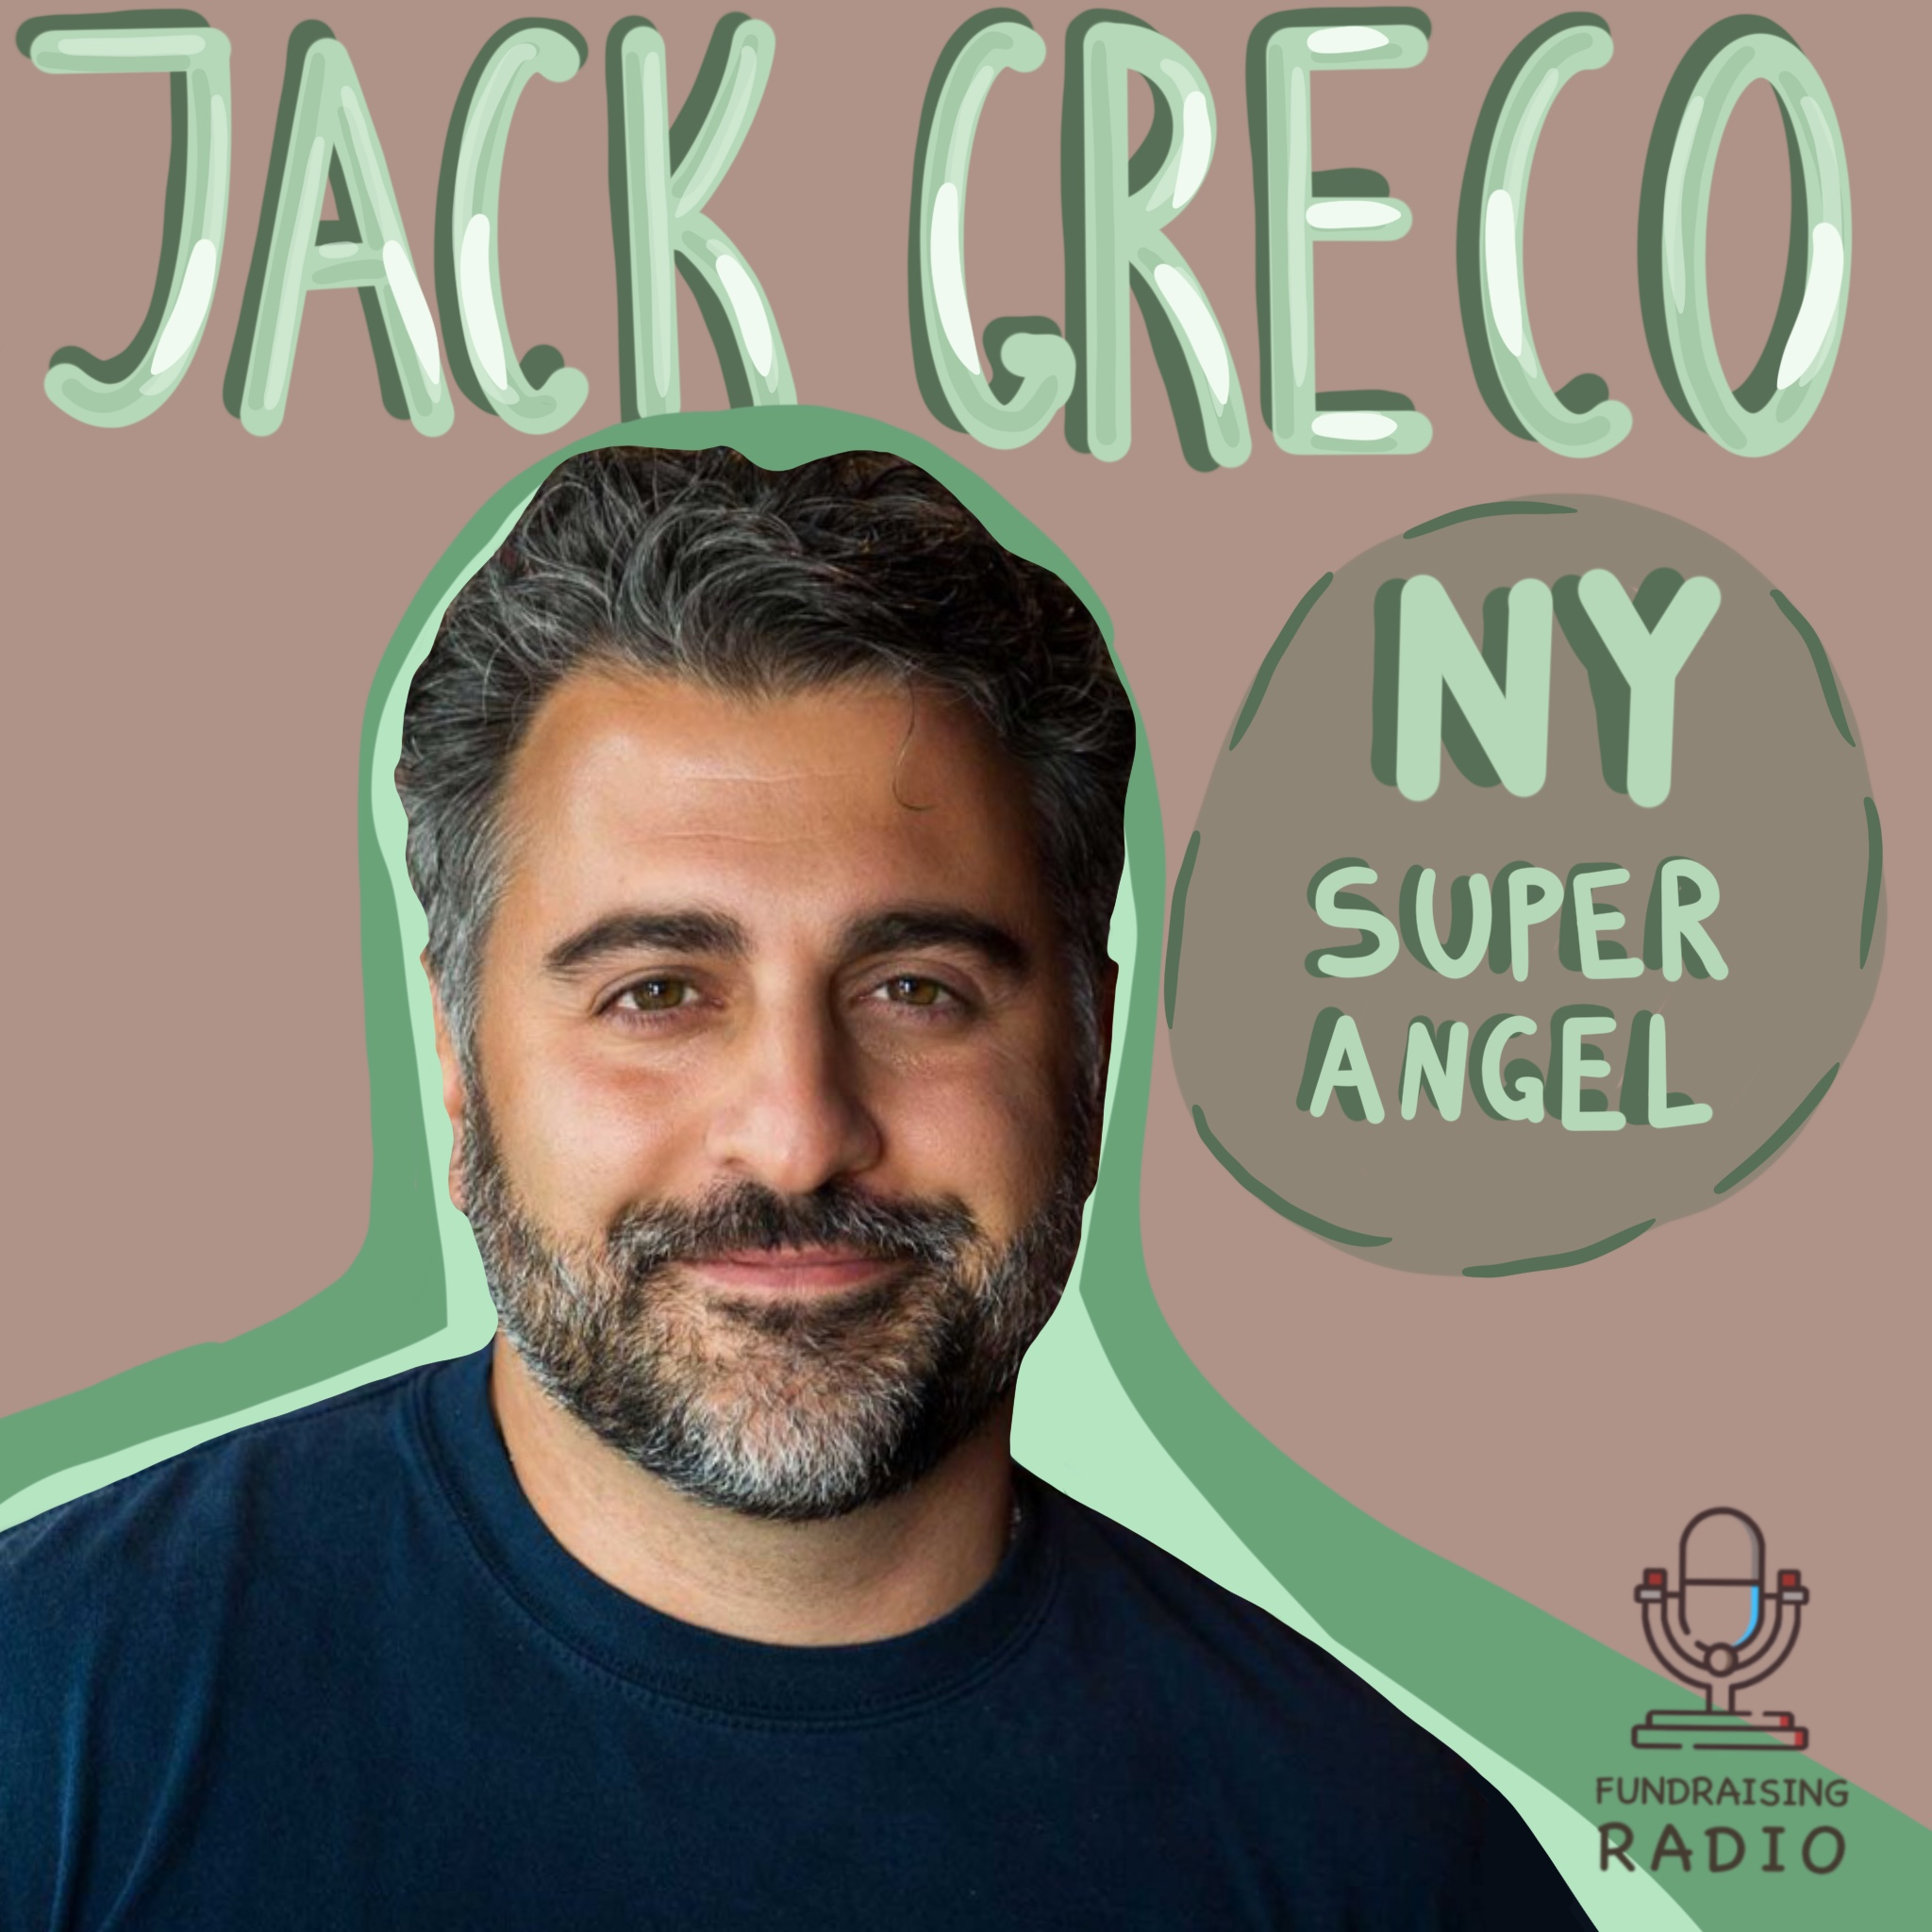 NY Super Angel - how to find fundraising support for your startup? By Jack Greco.